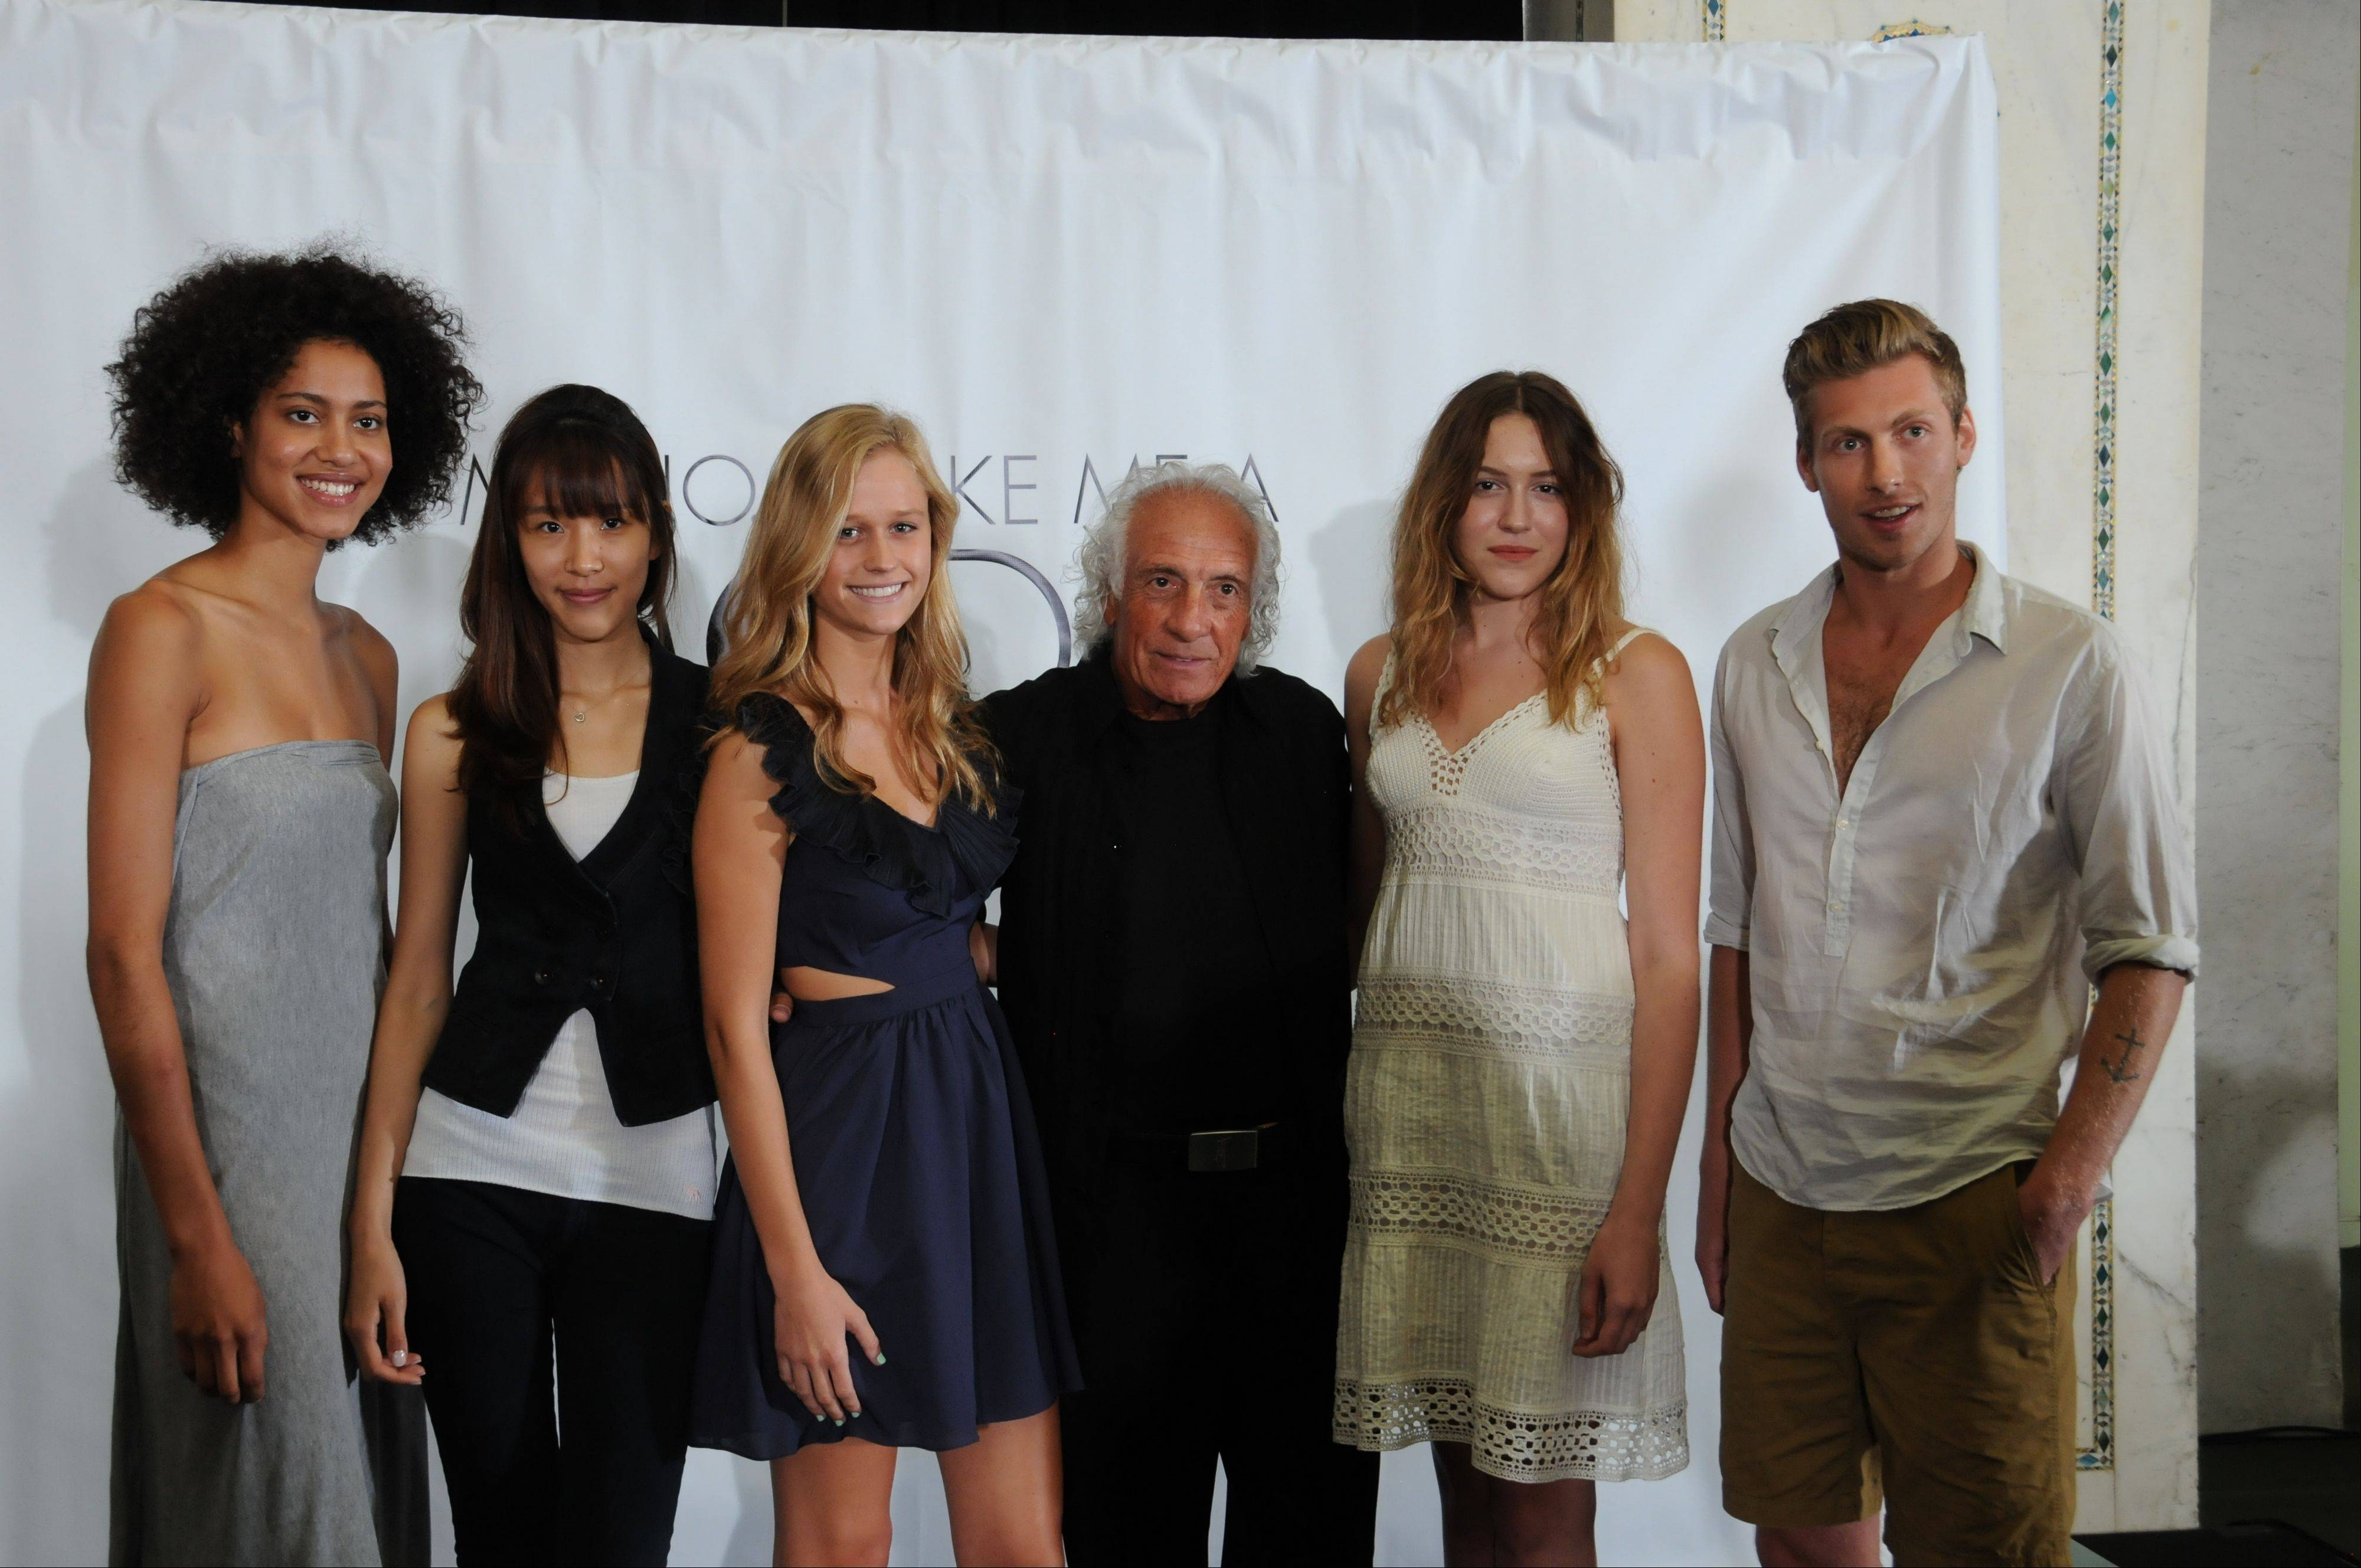 The five semifinalists pose with Mario Tricoci. From left: Mercedes Janell Johnson; Juni Juhyun Park; Lynn Michelle Tatge; Tricoci; Alexandra Grace Cangelosi and Zachary Ross.